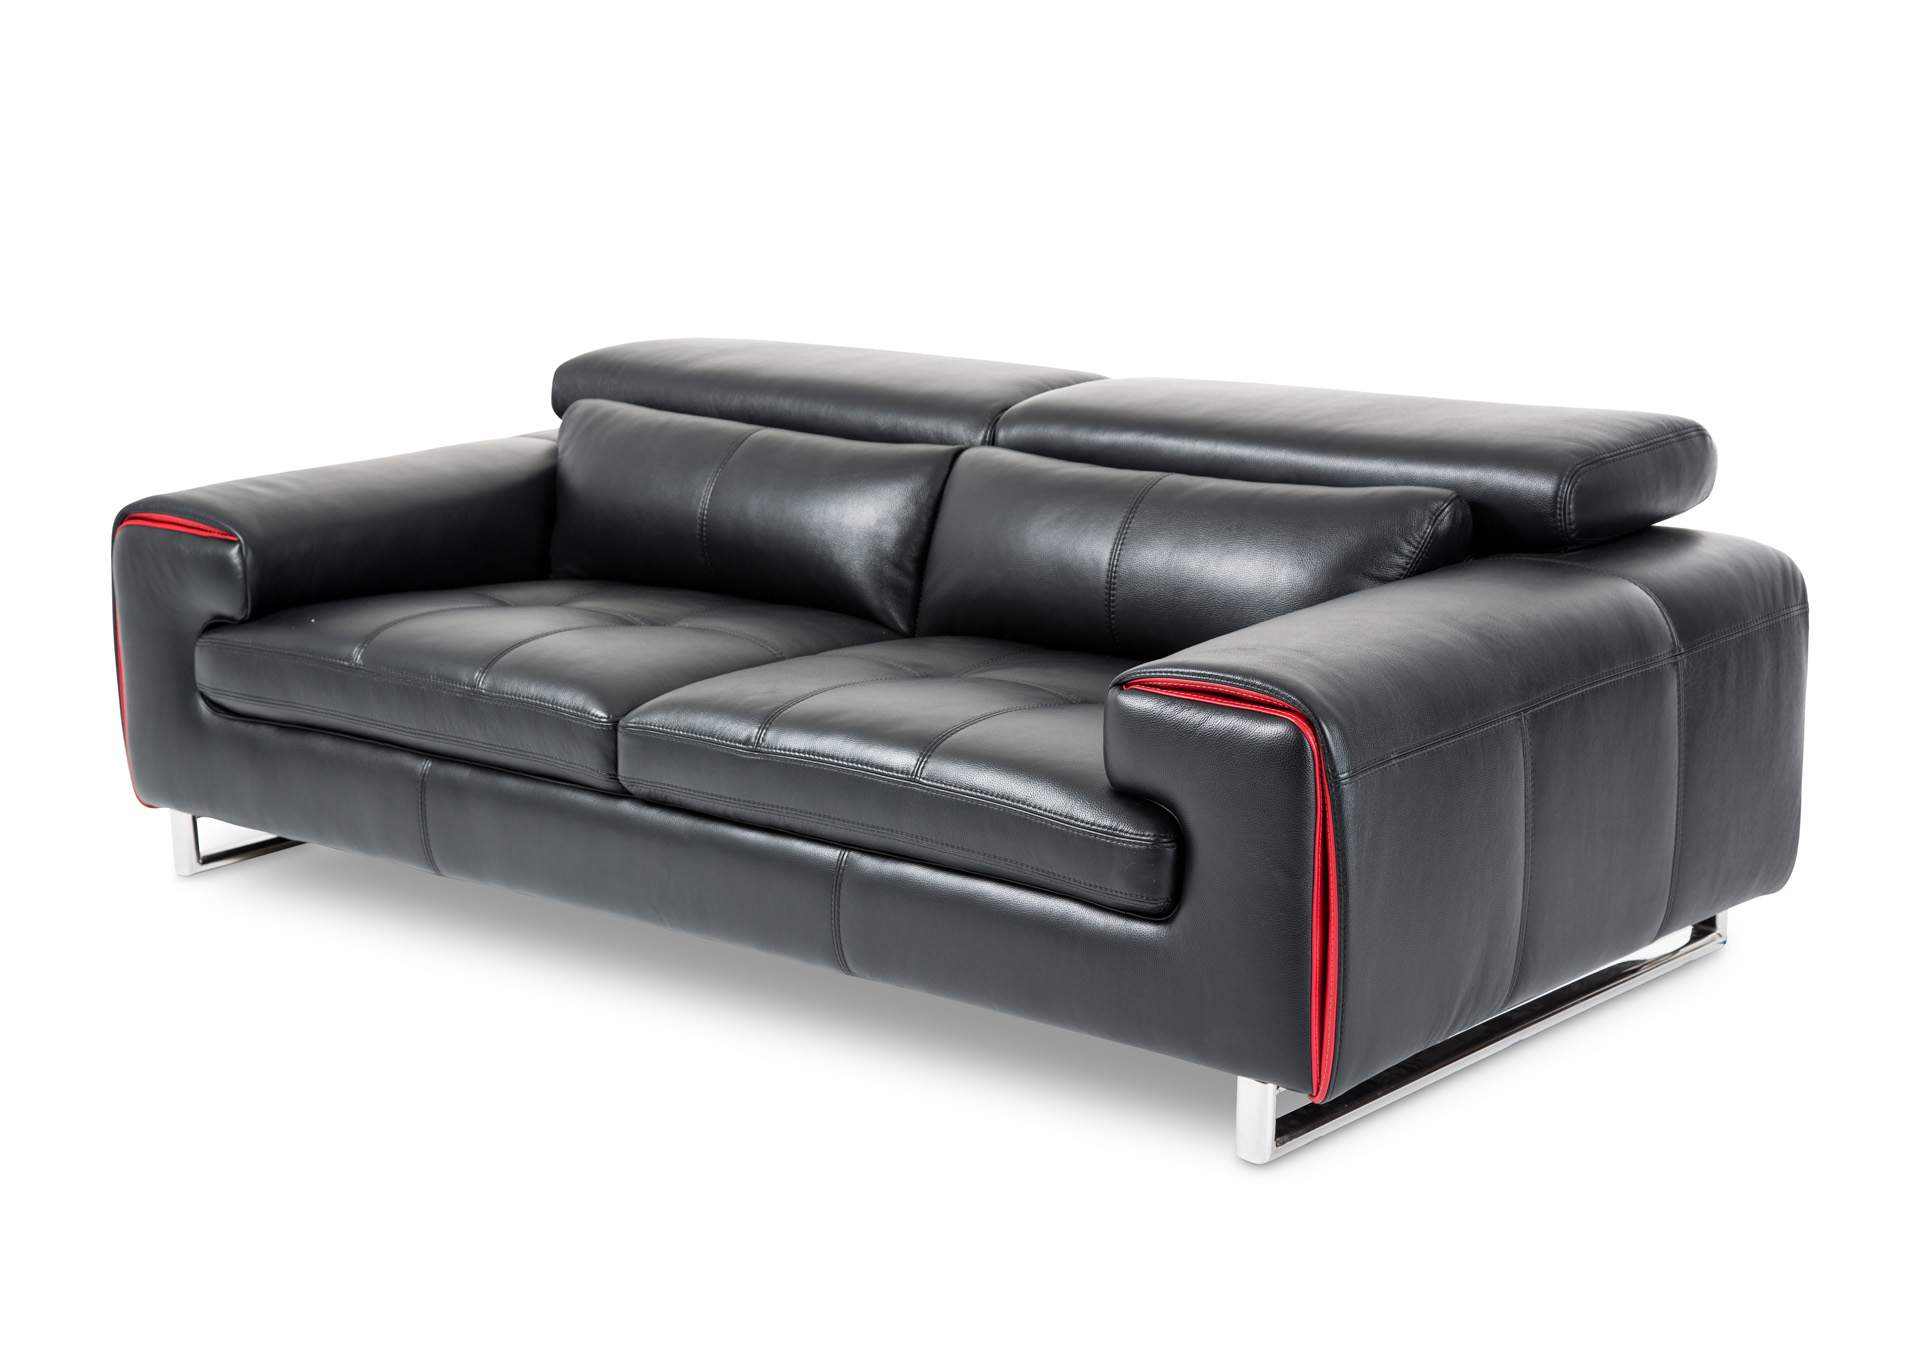 NuLook Furniture Magrena Black Leather Sofa w/Red St. Steel